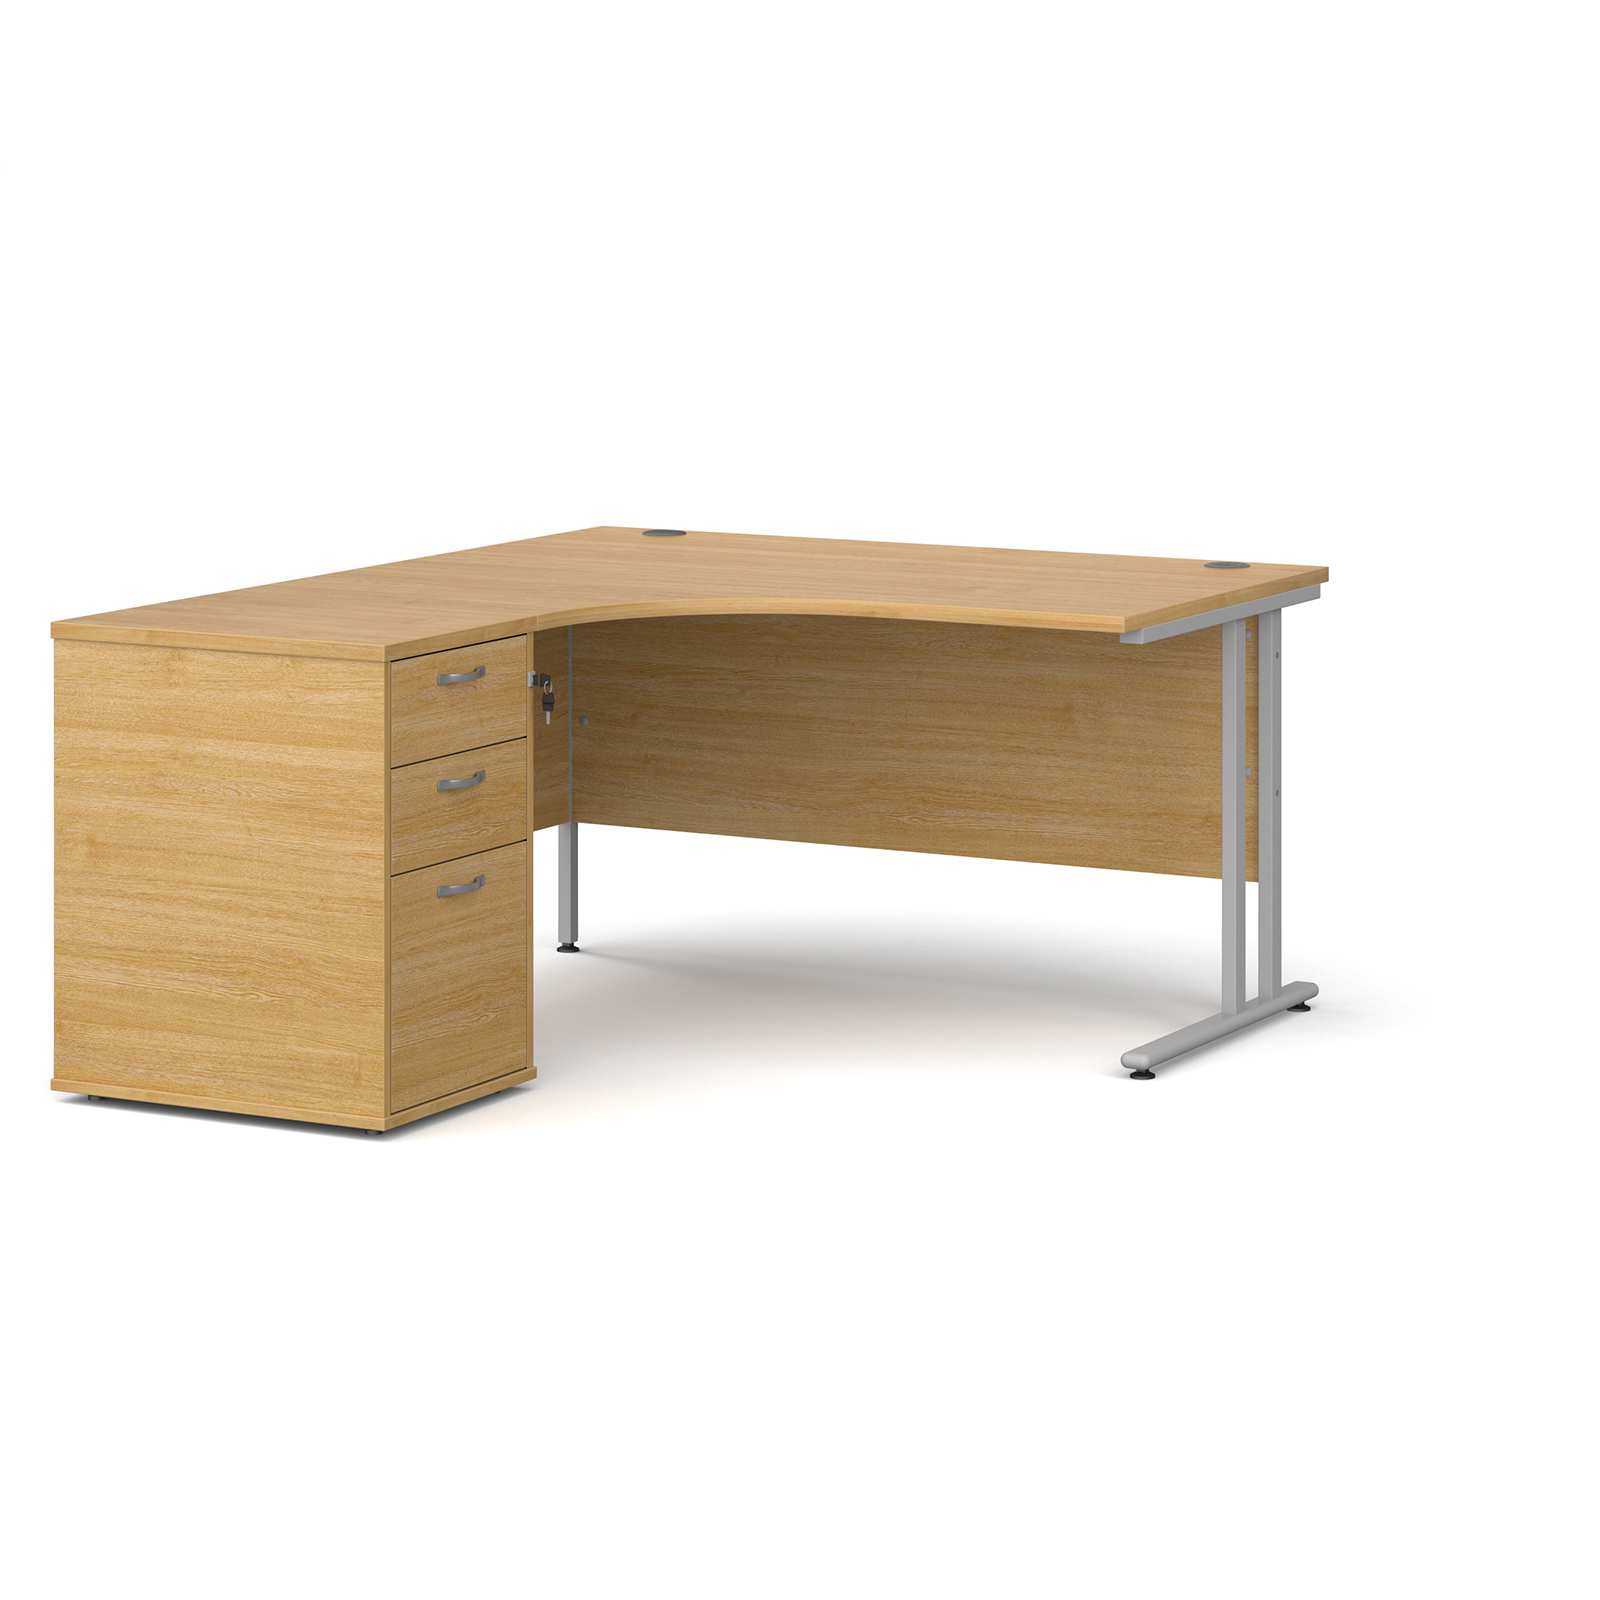 Left Handed Maestro 25 left hand ergonomic desk 1400mm with silver cantilever frame and desk high pedestal - oak